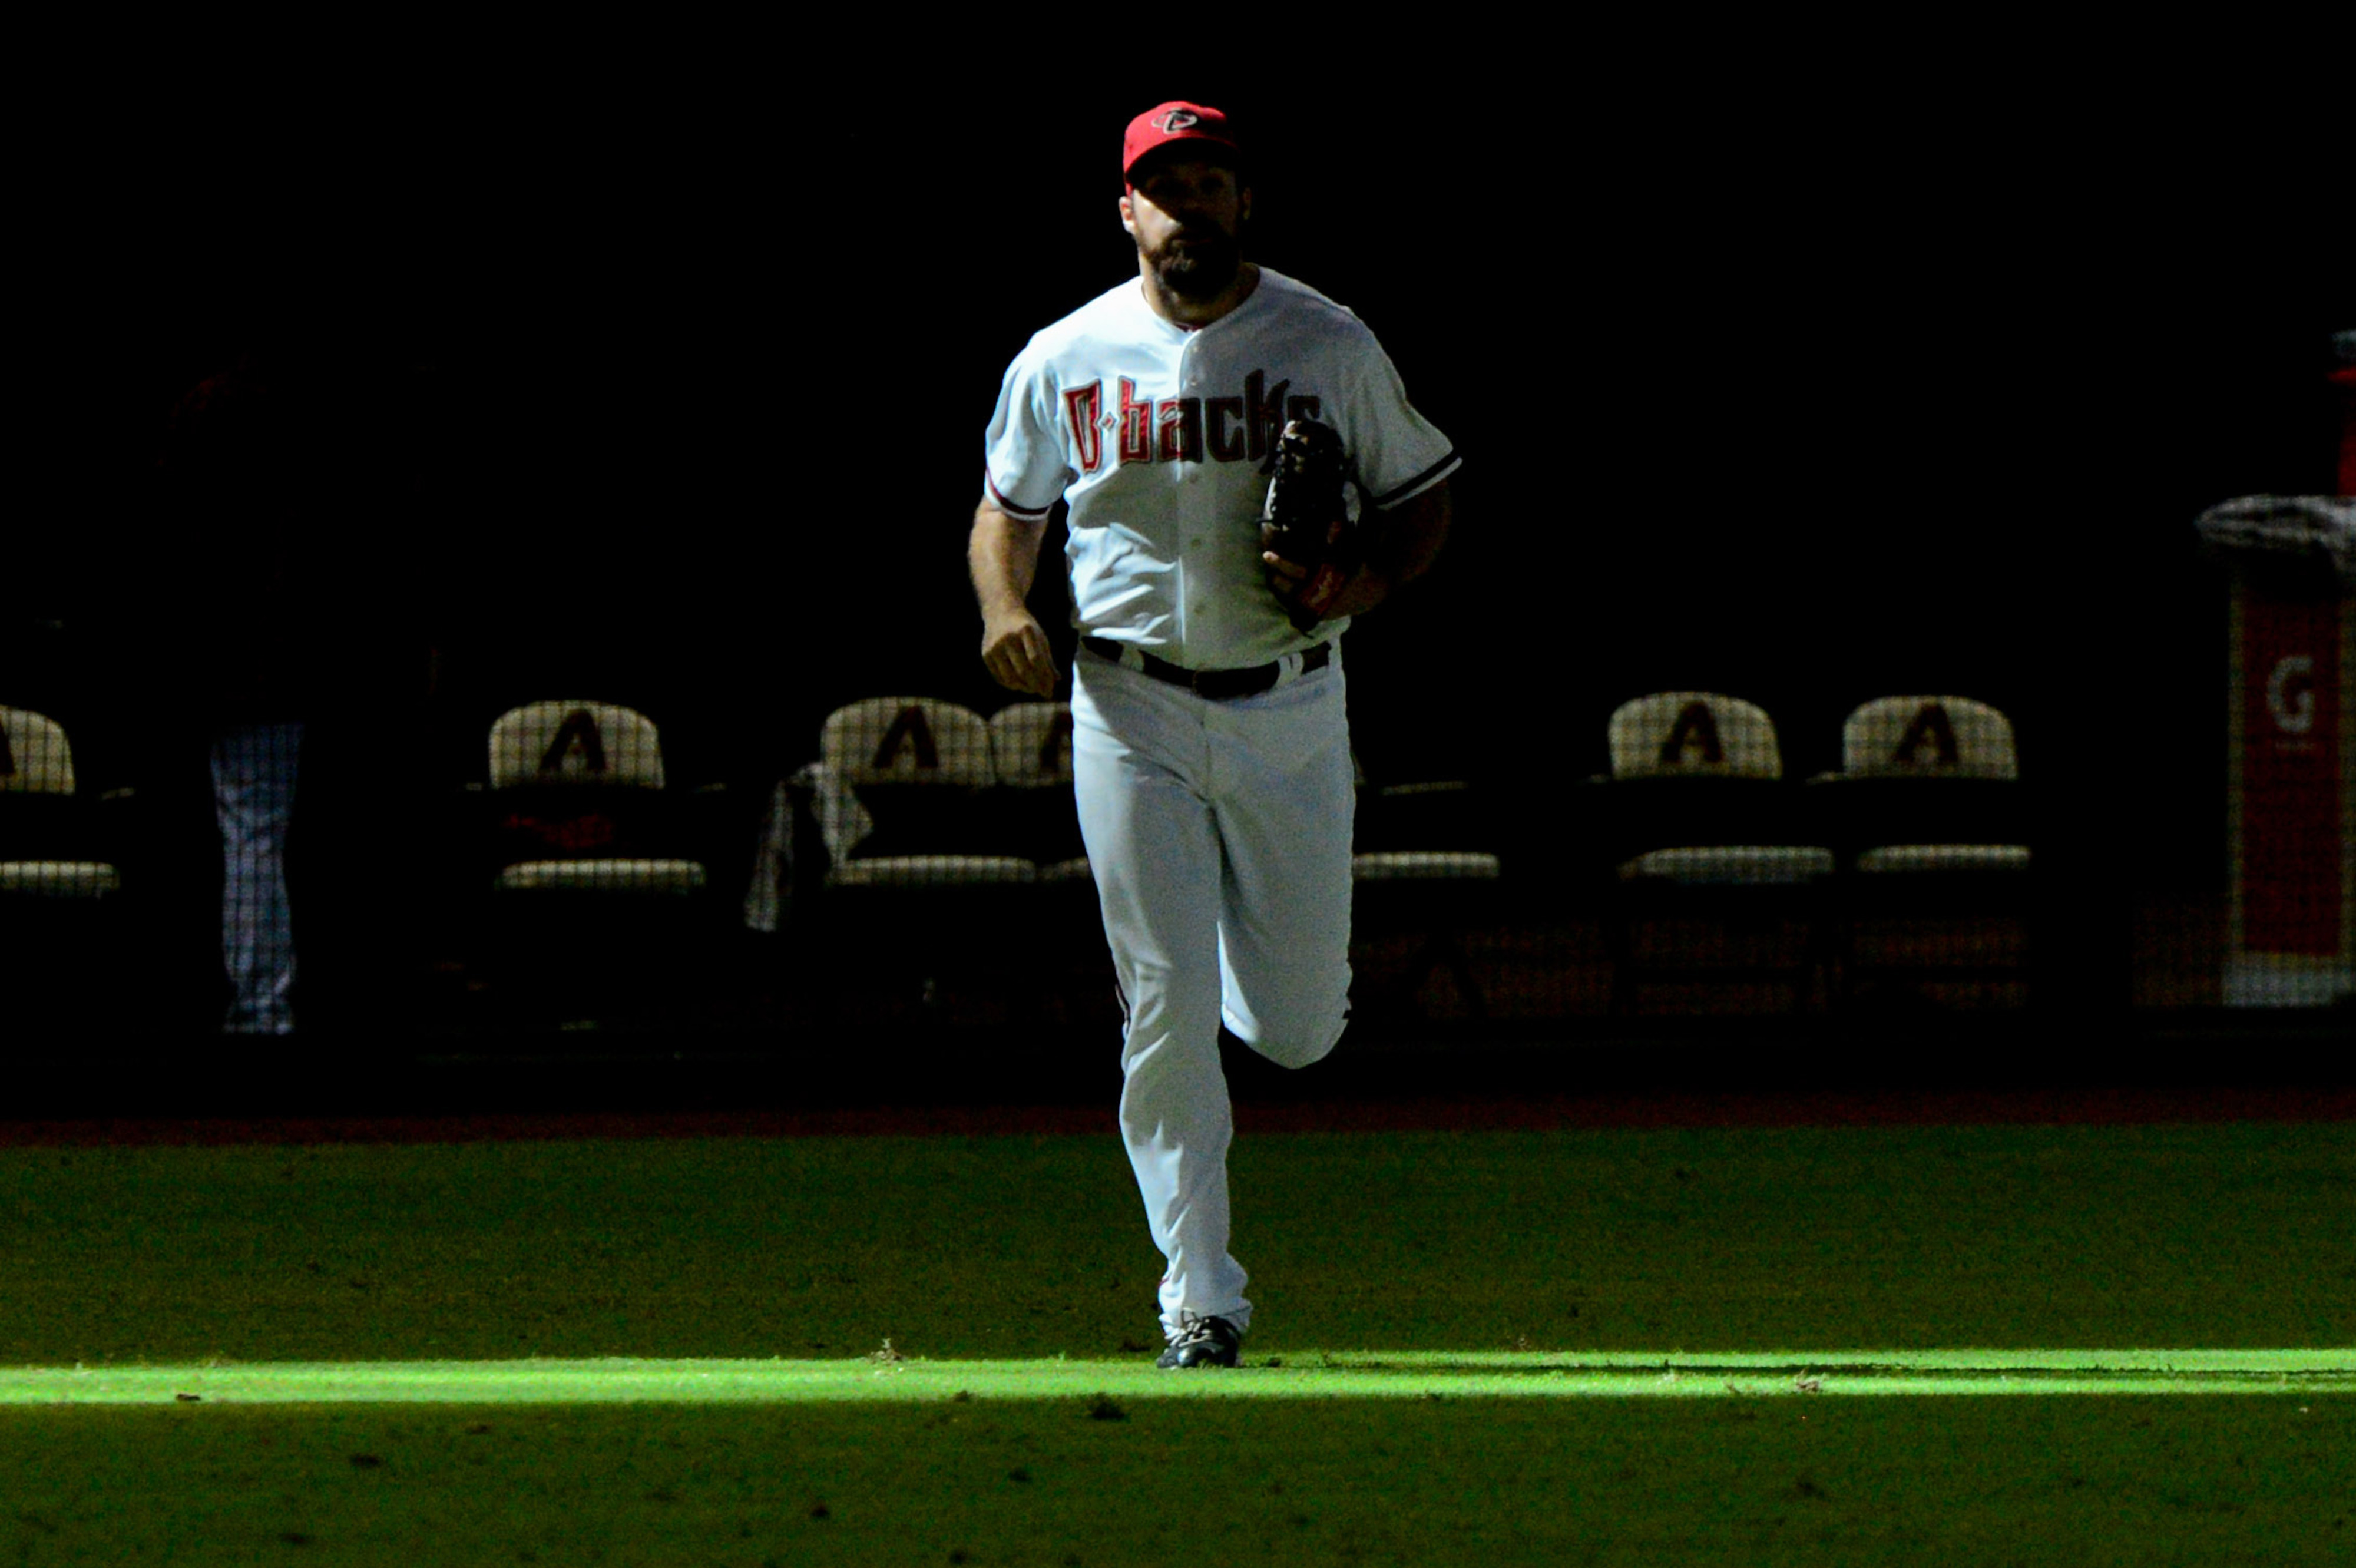 Josh Collmenter trots in from the bullpen. Must be extra innings.